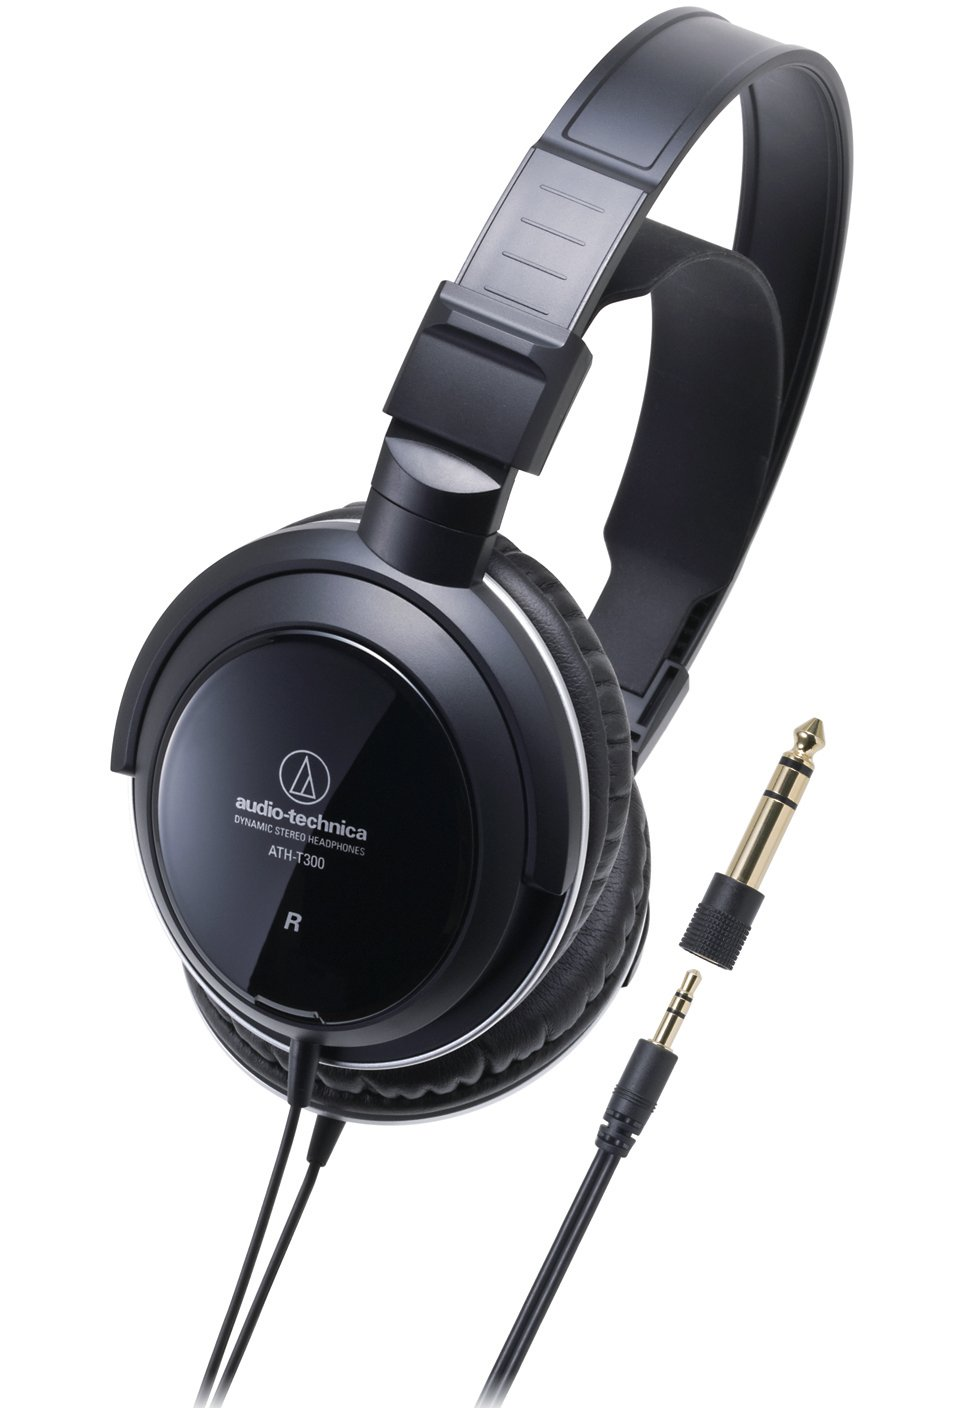 Audio Technica Extended Response Dynamic Stereoreview